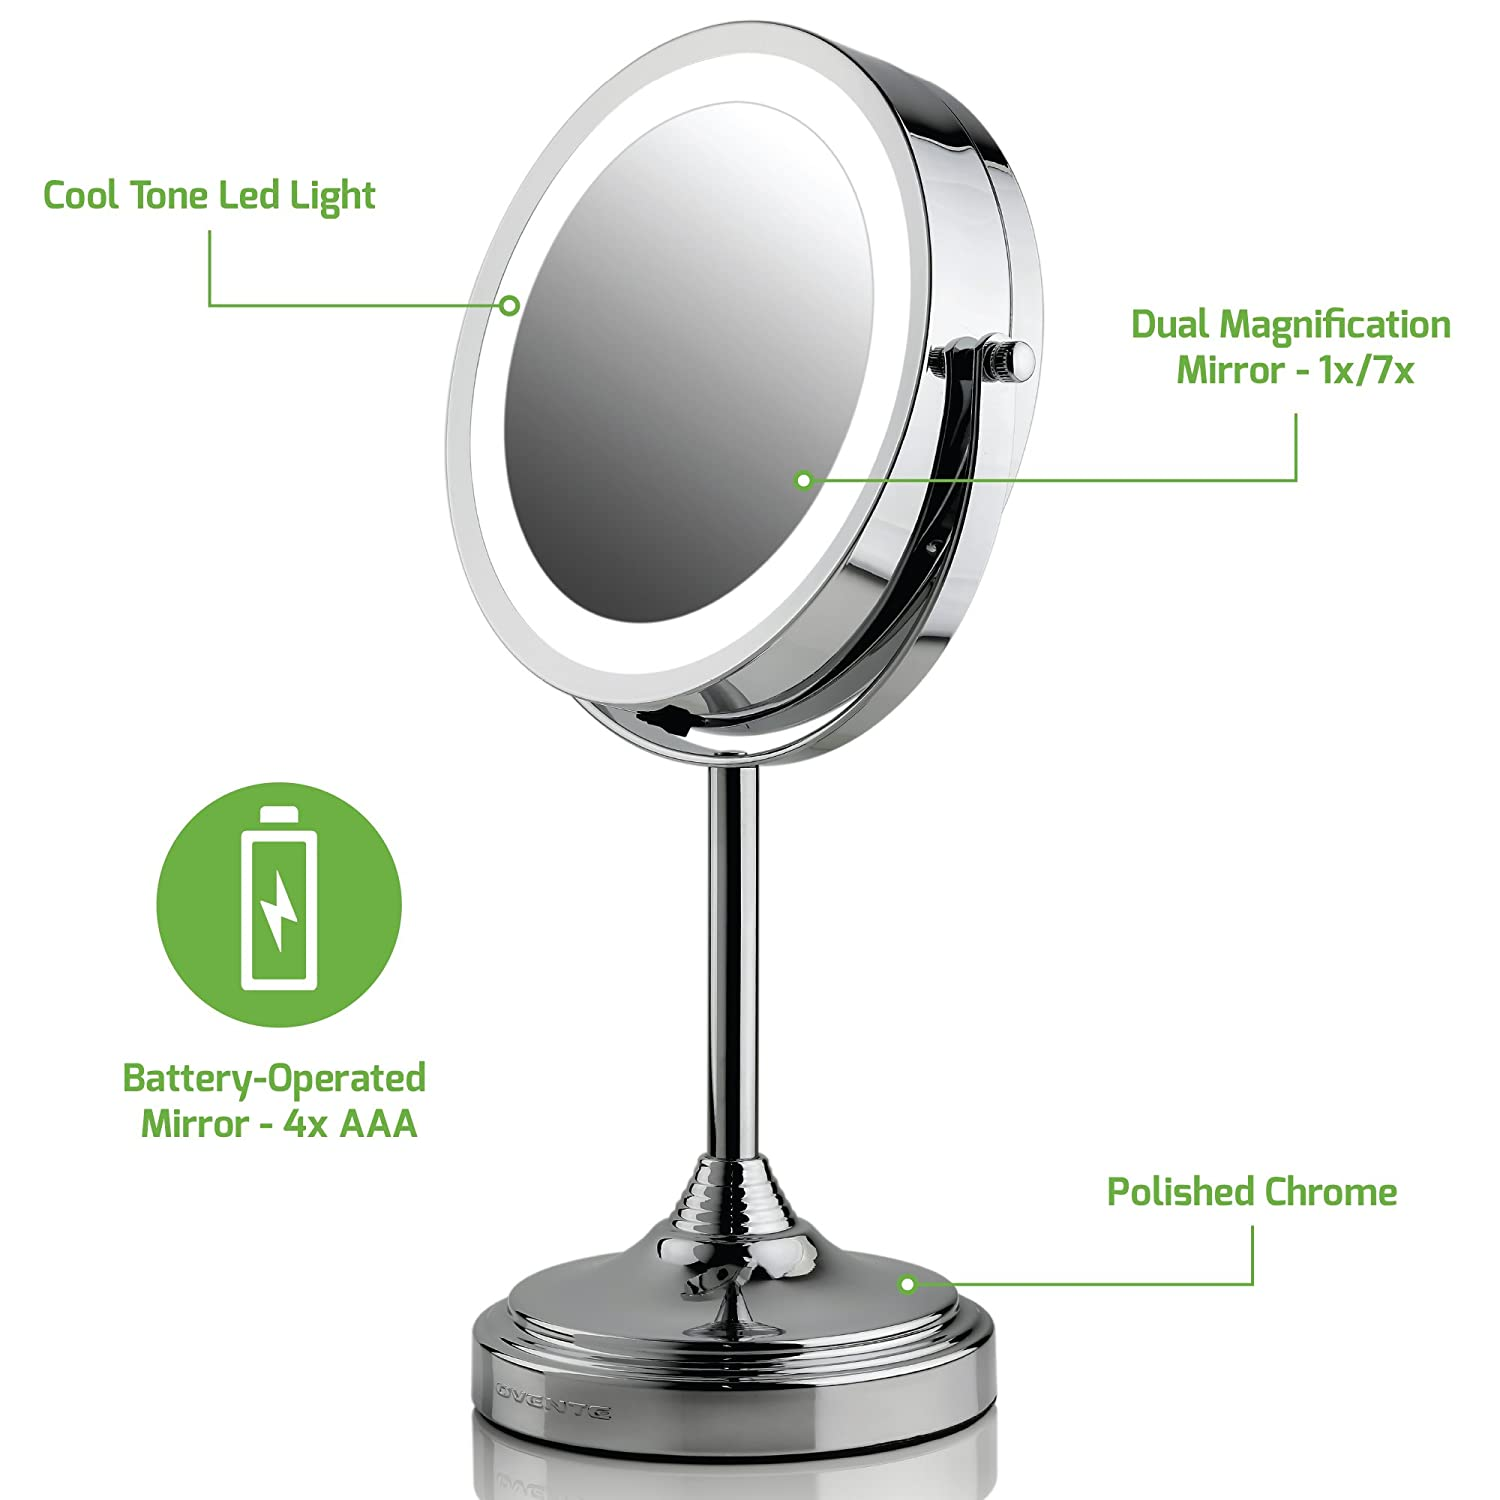 Ovente LED Lighted Tabletop Makeup Mirror, 7 Inch, Dual-Sided 1x/7x Magnification, Polished Chrome (MCT70CH1X7X) Ovente (Beauty)